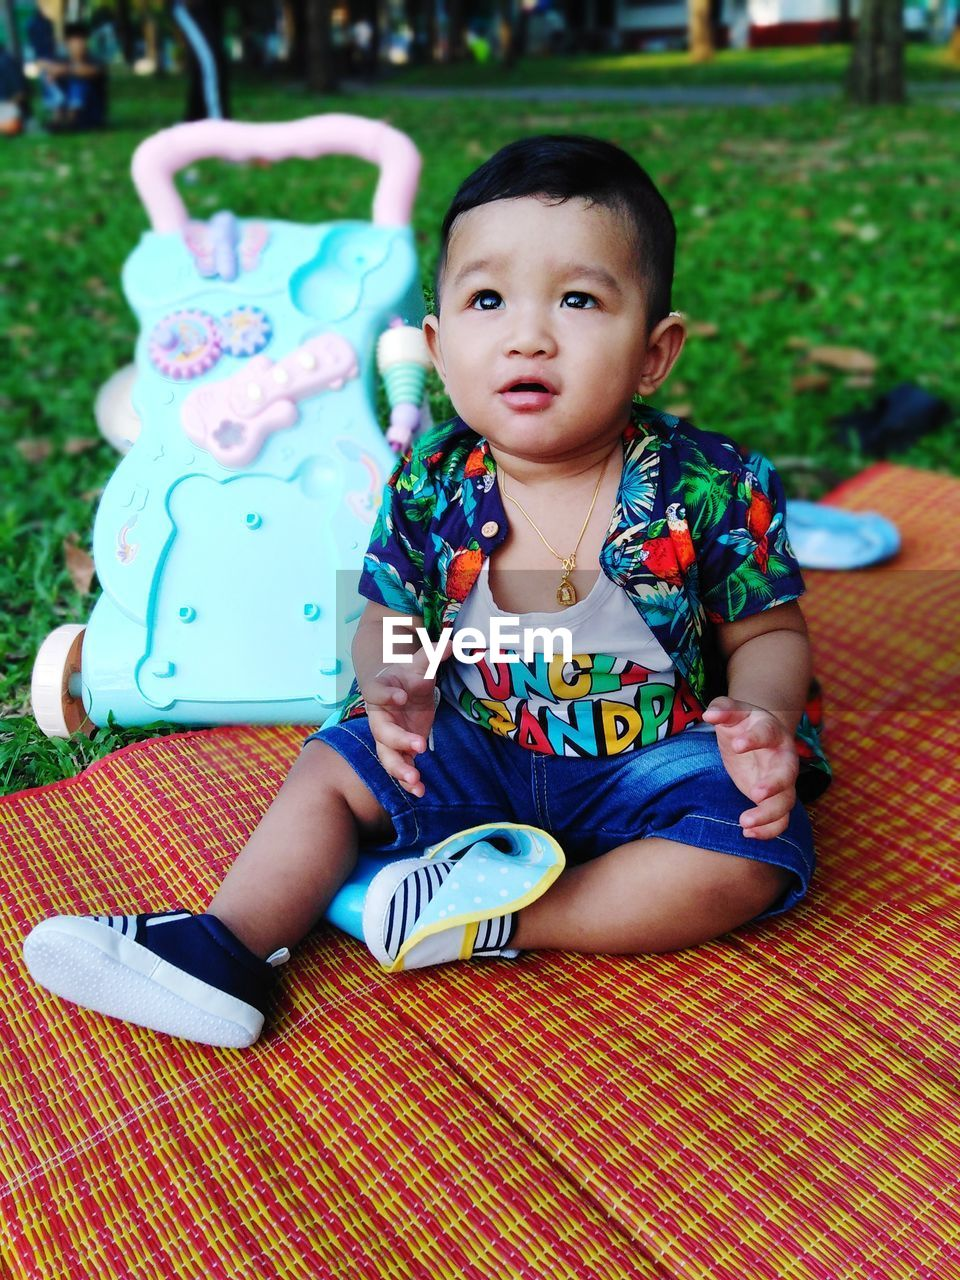 child, childhood, sitting, real people, front view, full length, one person, cute, innocence, boys, casual clothing, babyhood, looking, leisure activity, baby, males, lifestyles, looking away, toddler, outdoors